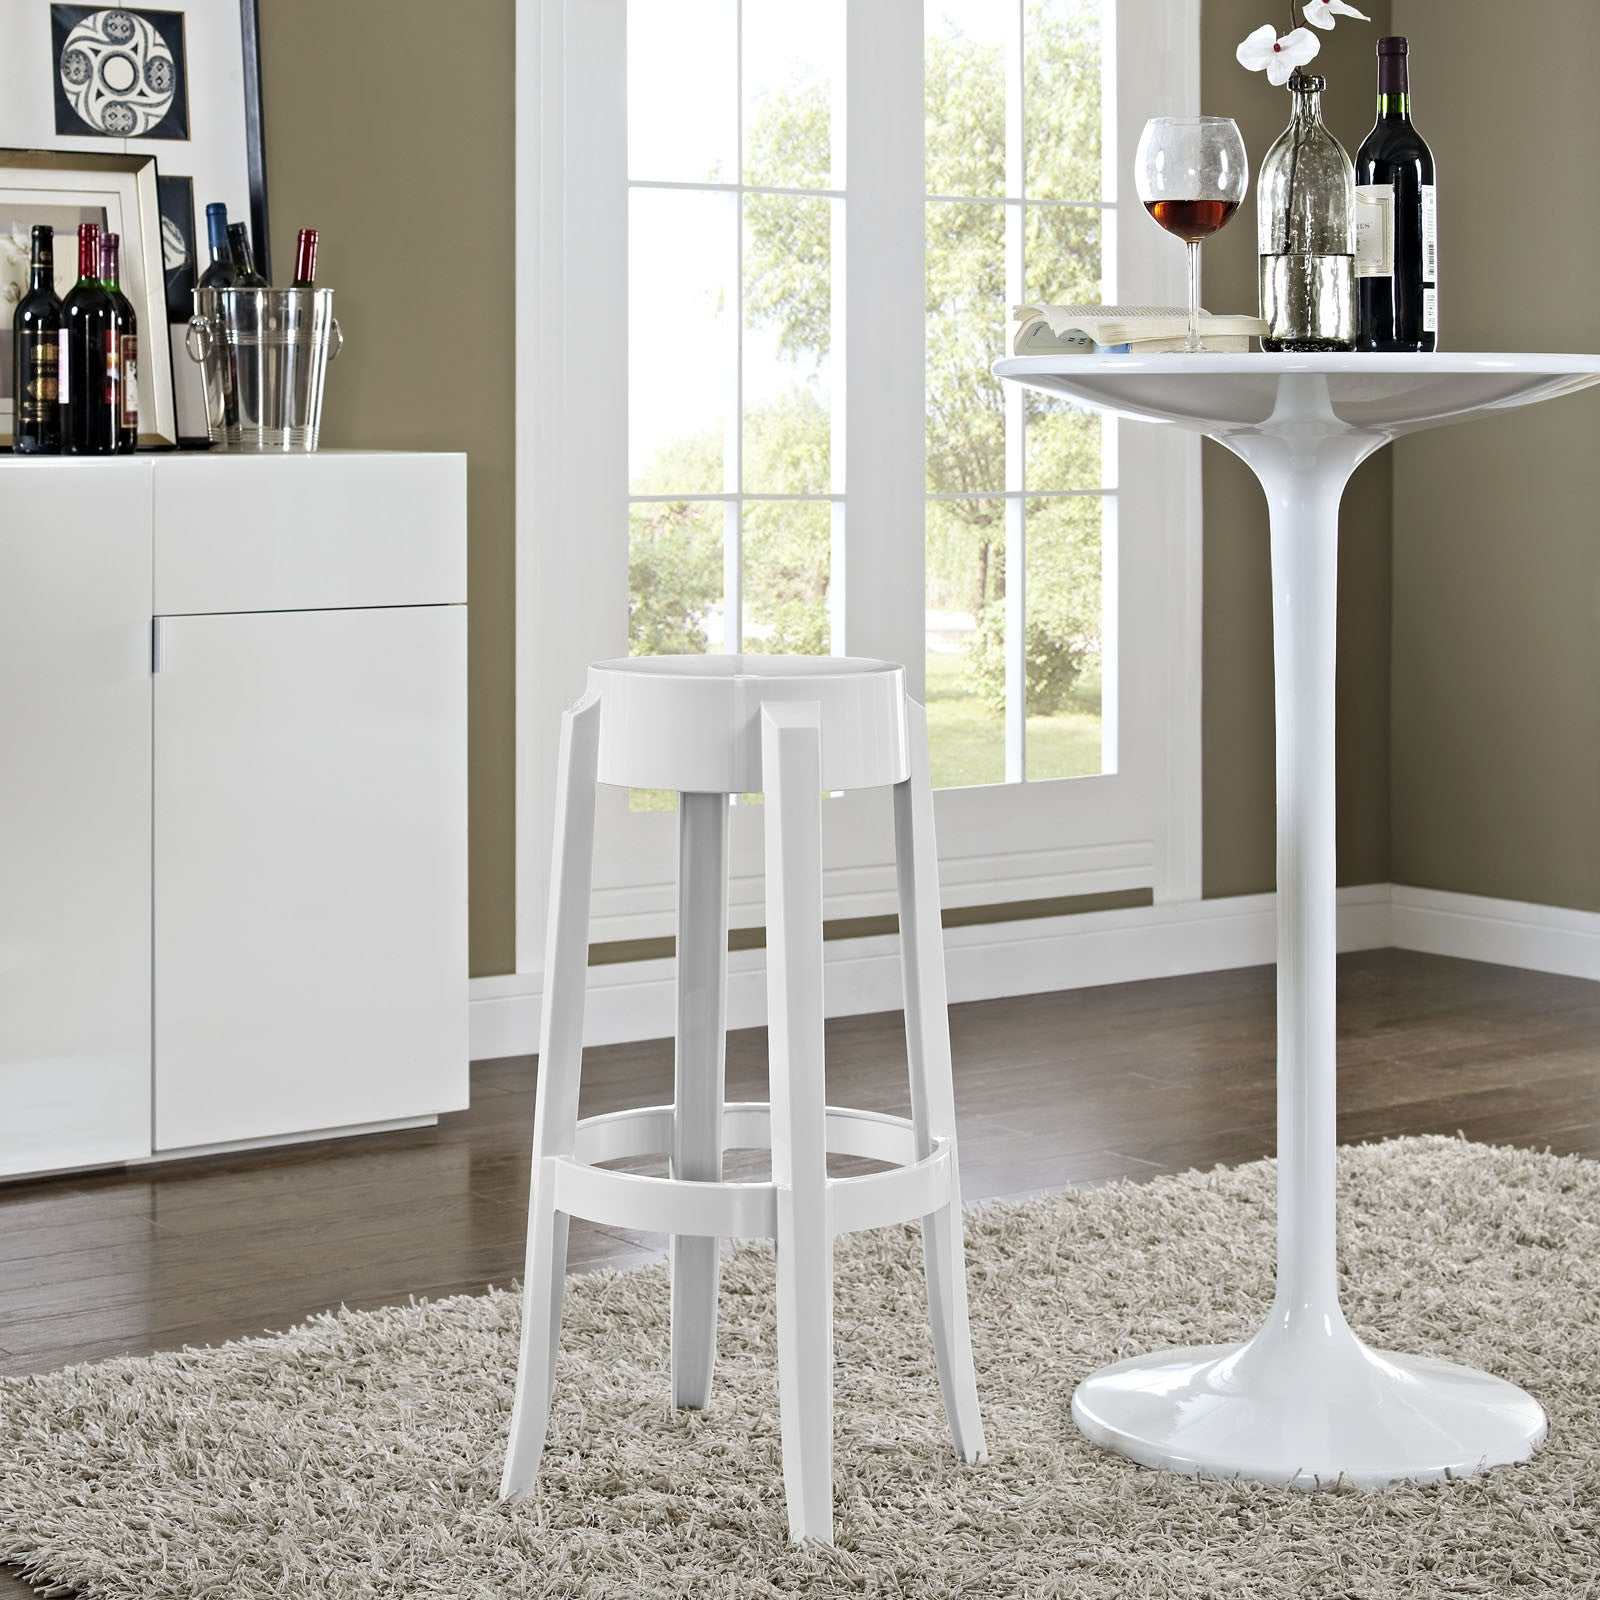 Modway Furniture Casper Modern Bar Stool Eei 170 Minimal